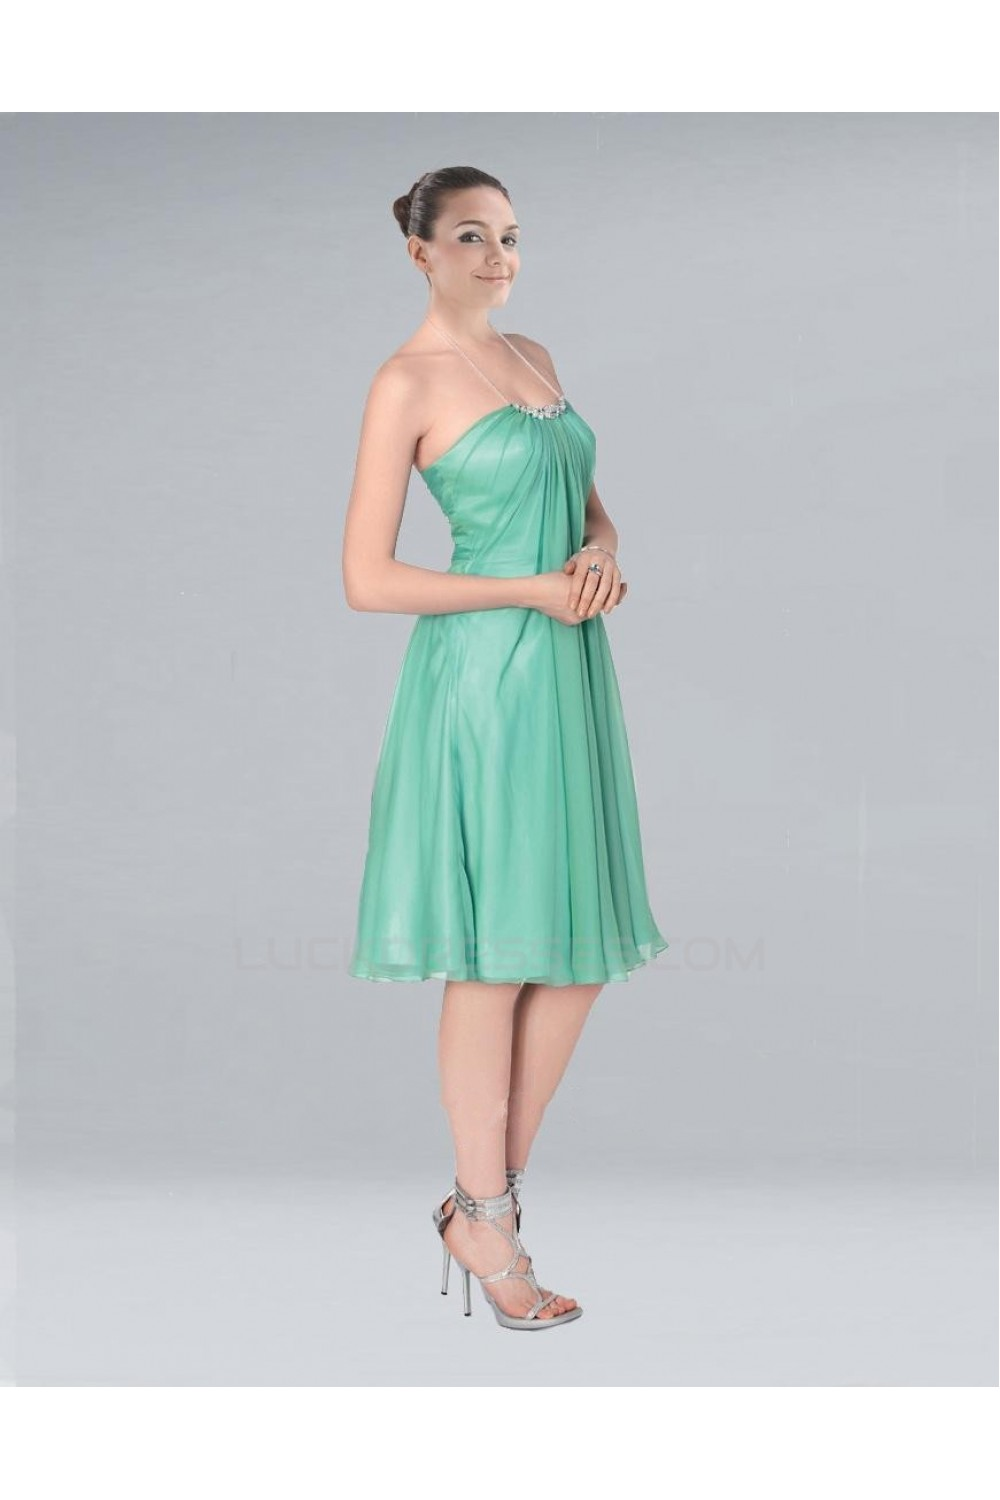 Line Halter Short Green Chiffon Bridesmaid Dresses Wedding Party ...